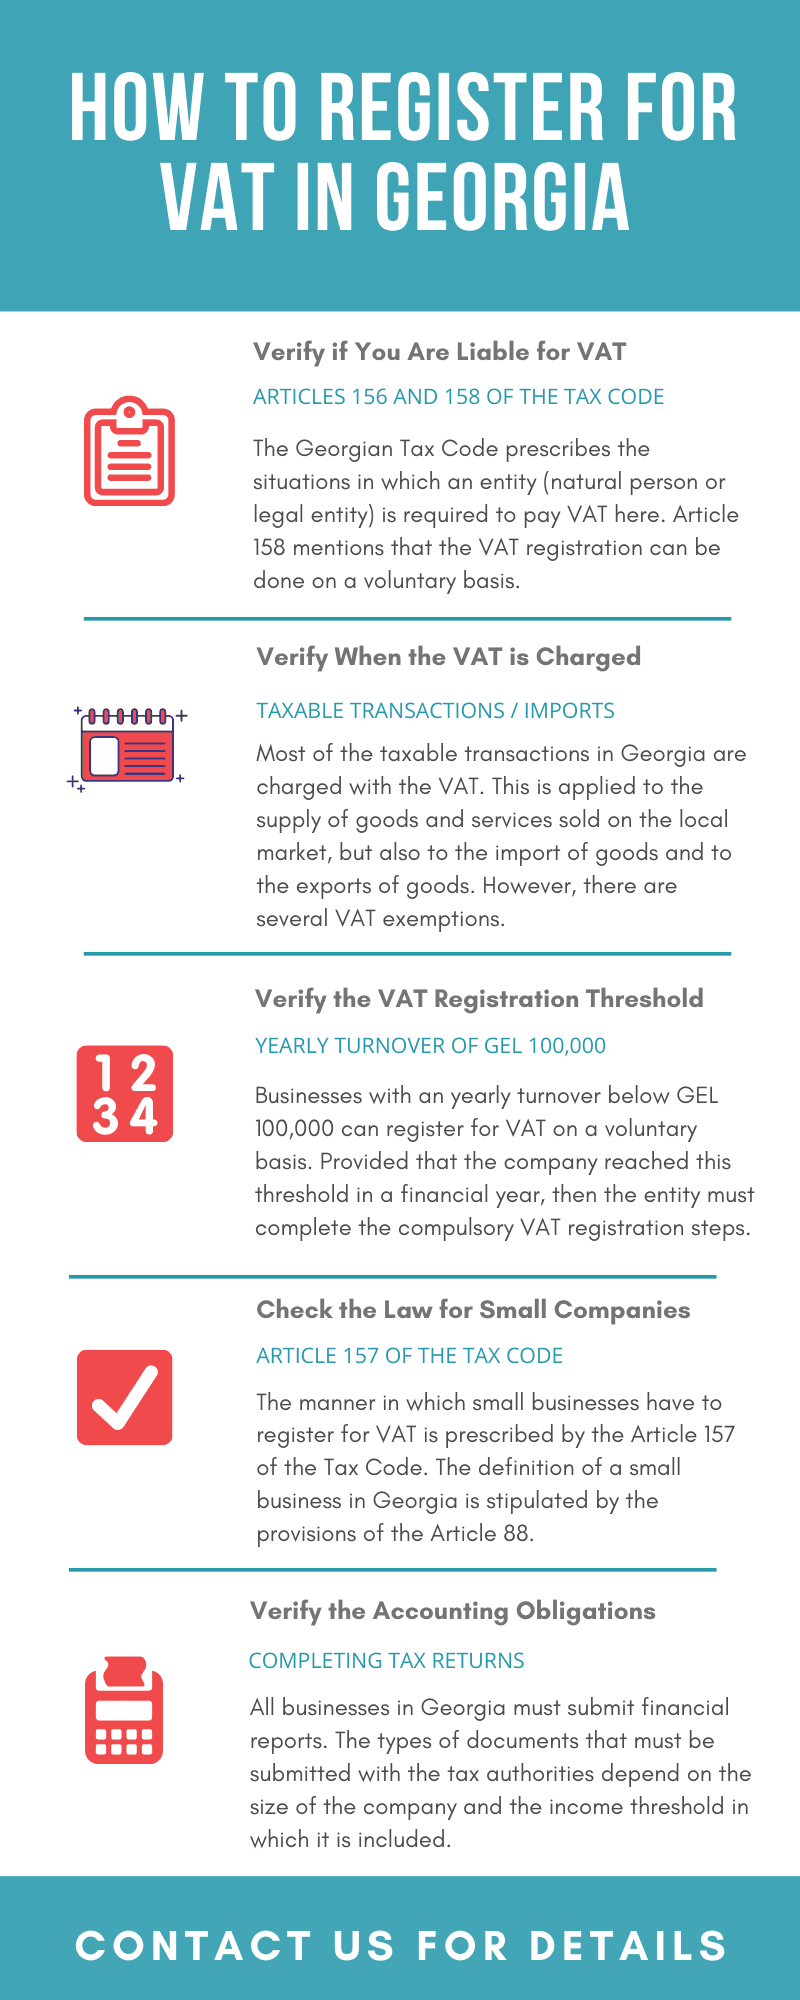 How to Register for VAT in Georgia.png